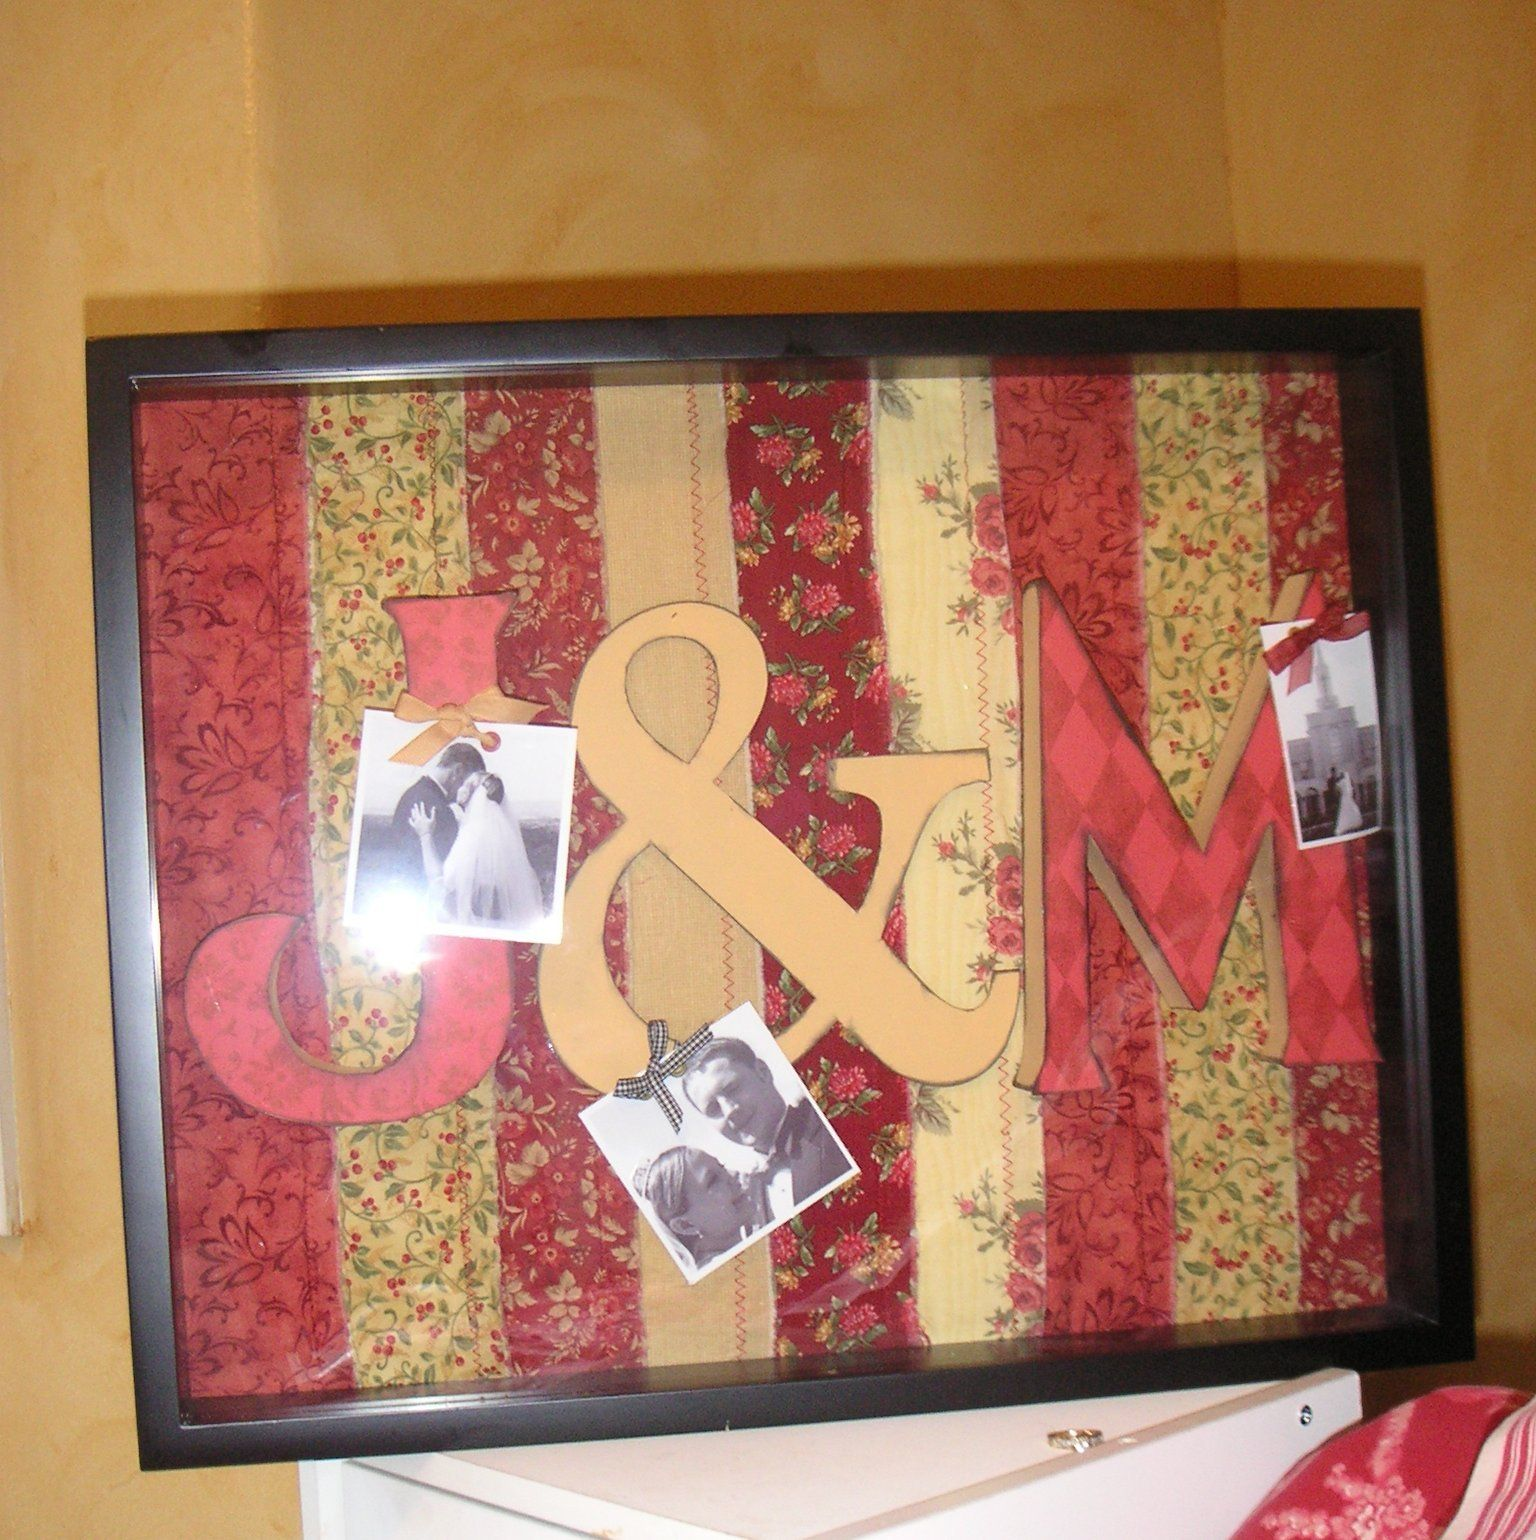 If you're looking for a custom wedding gift, consider making this personalized Monogram Frame…